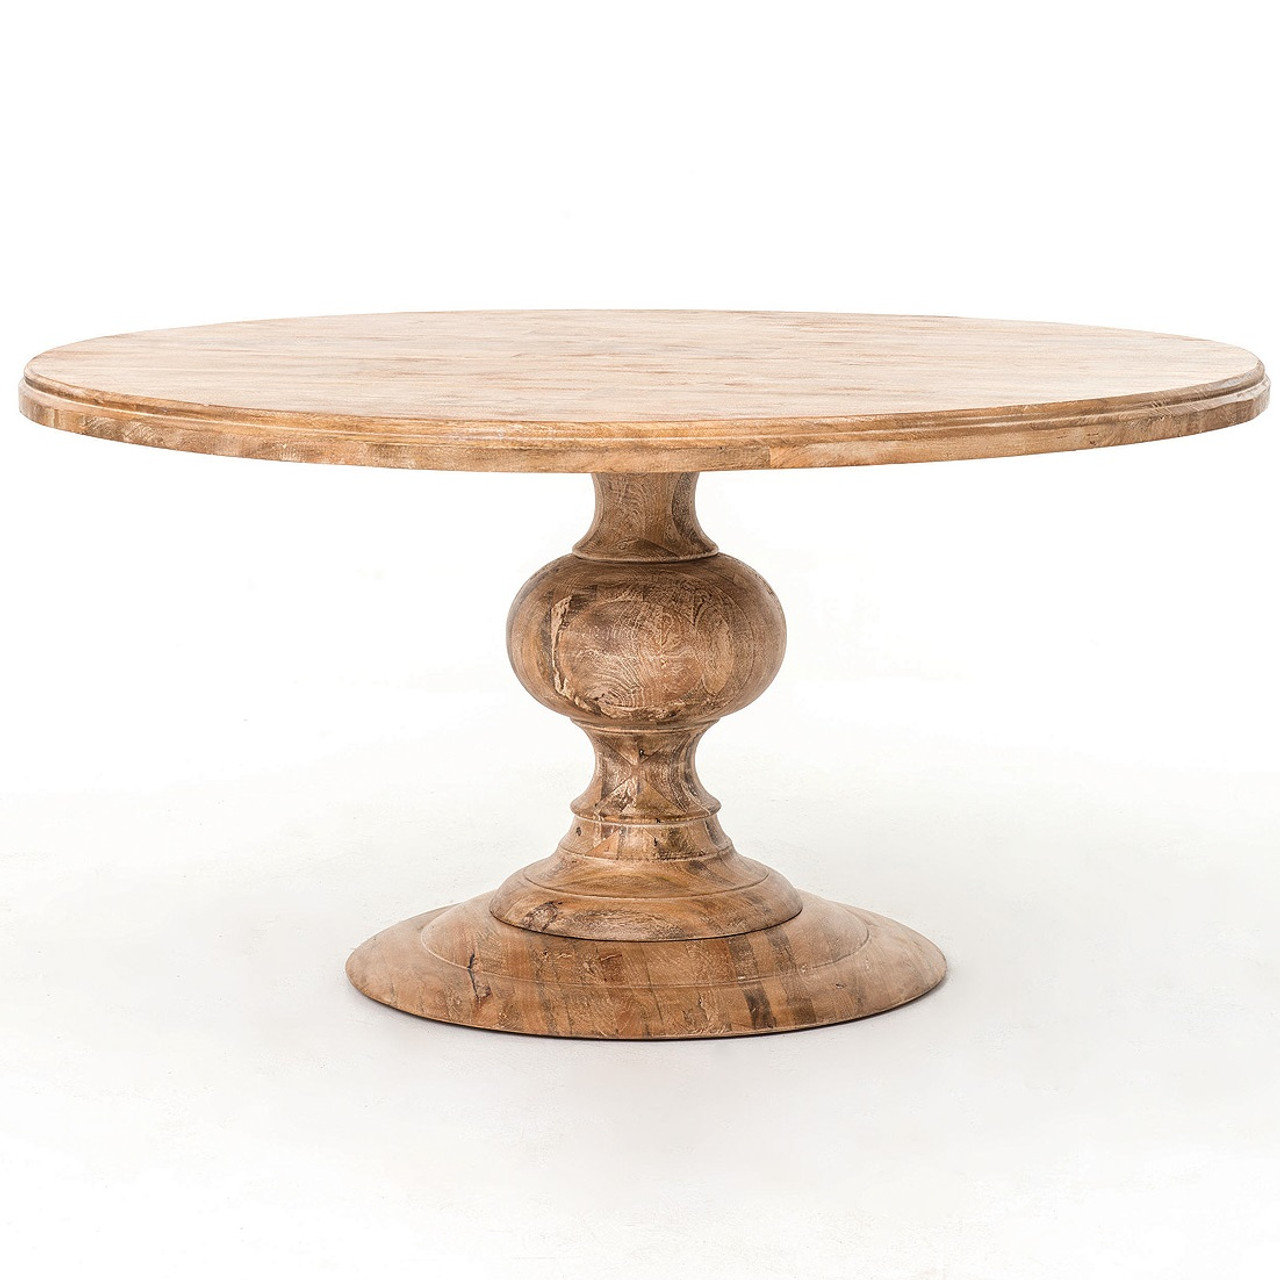 Round Pedestal Dining Table In Whitewash Wood Round Dining - 50 inch round pedestal table